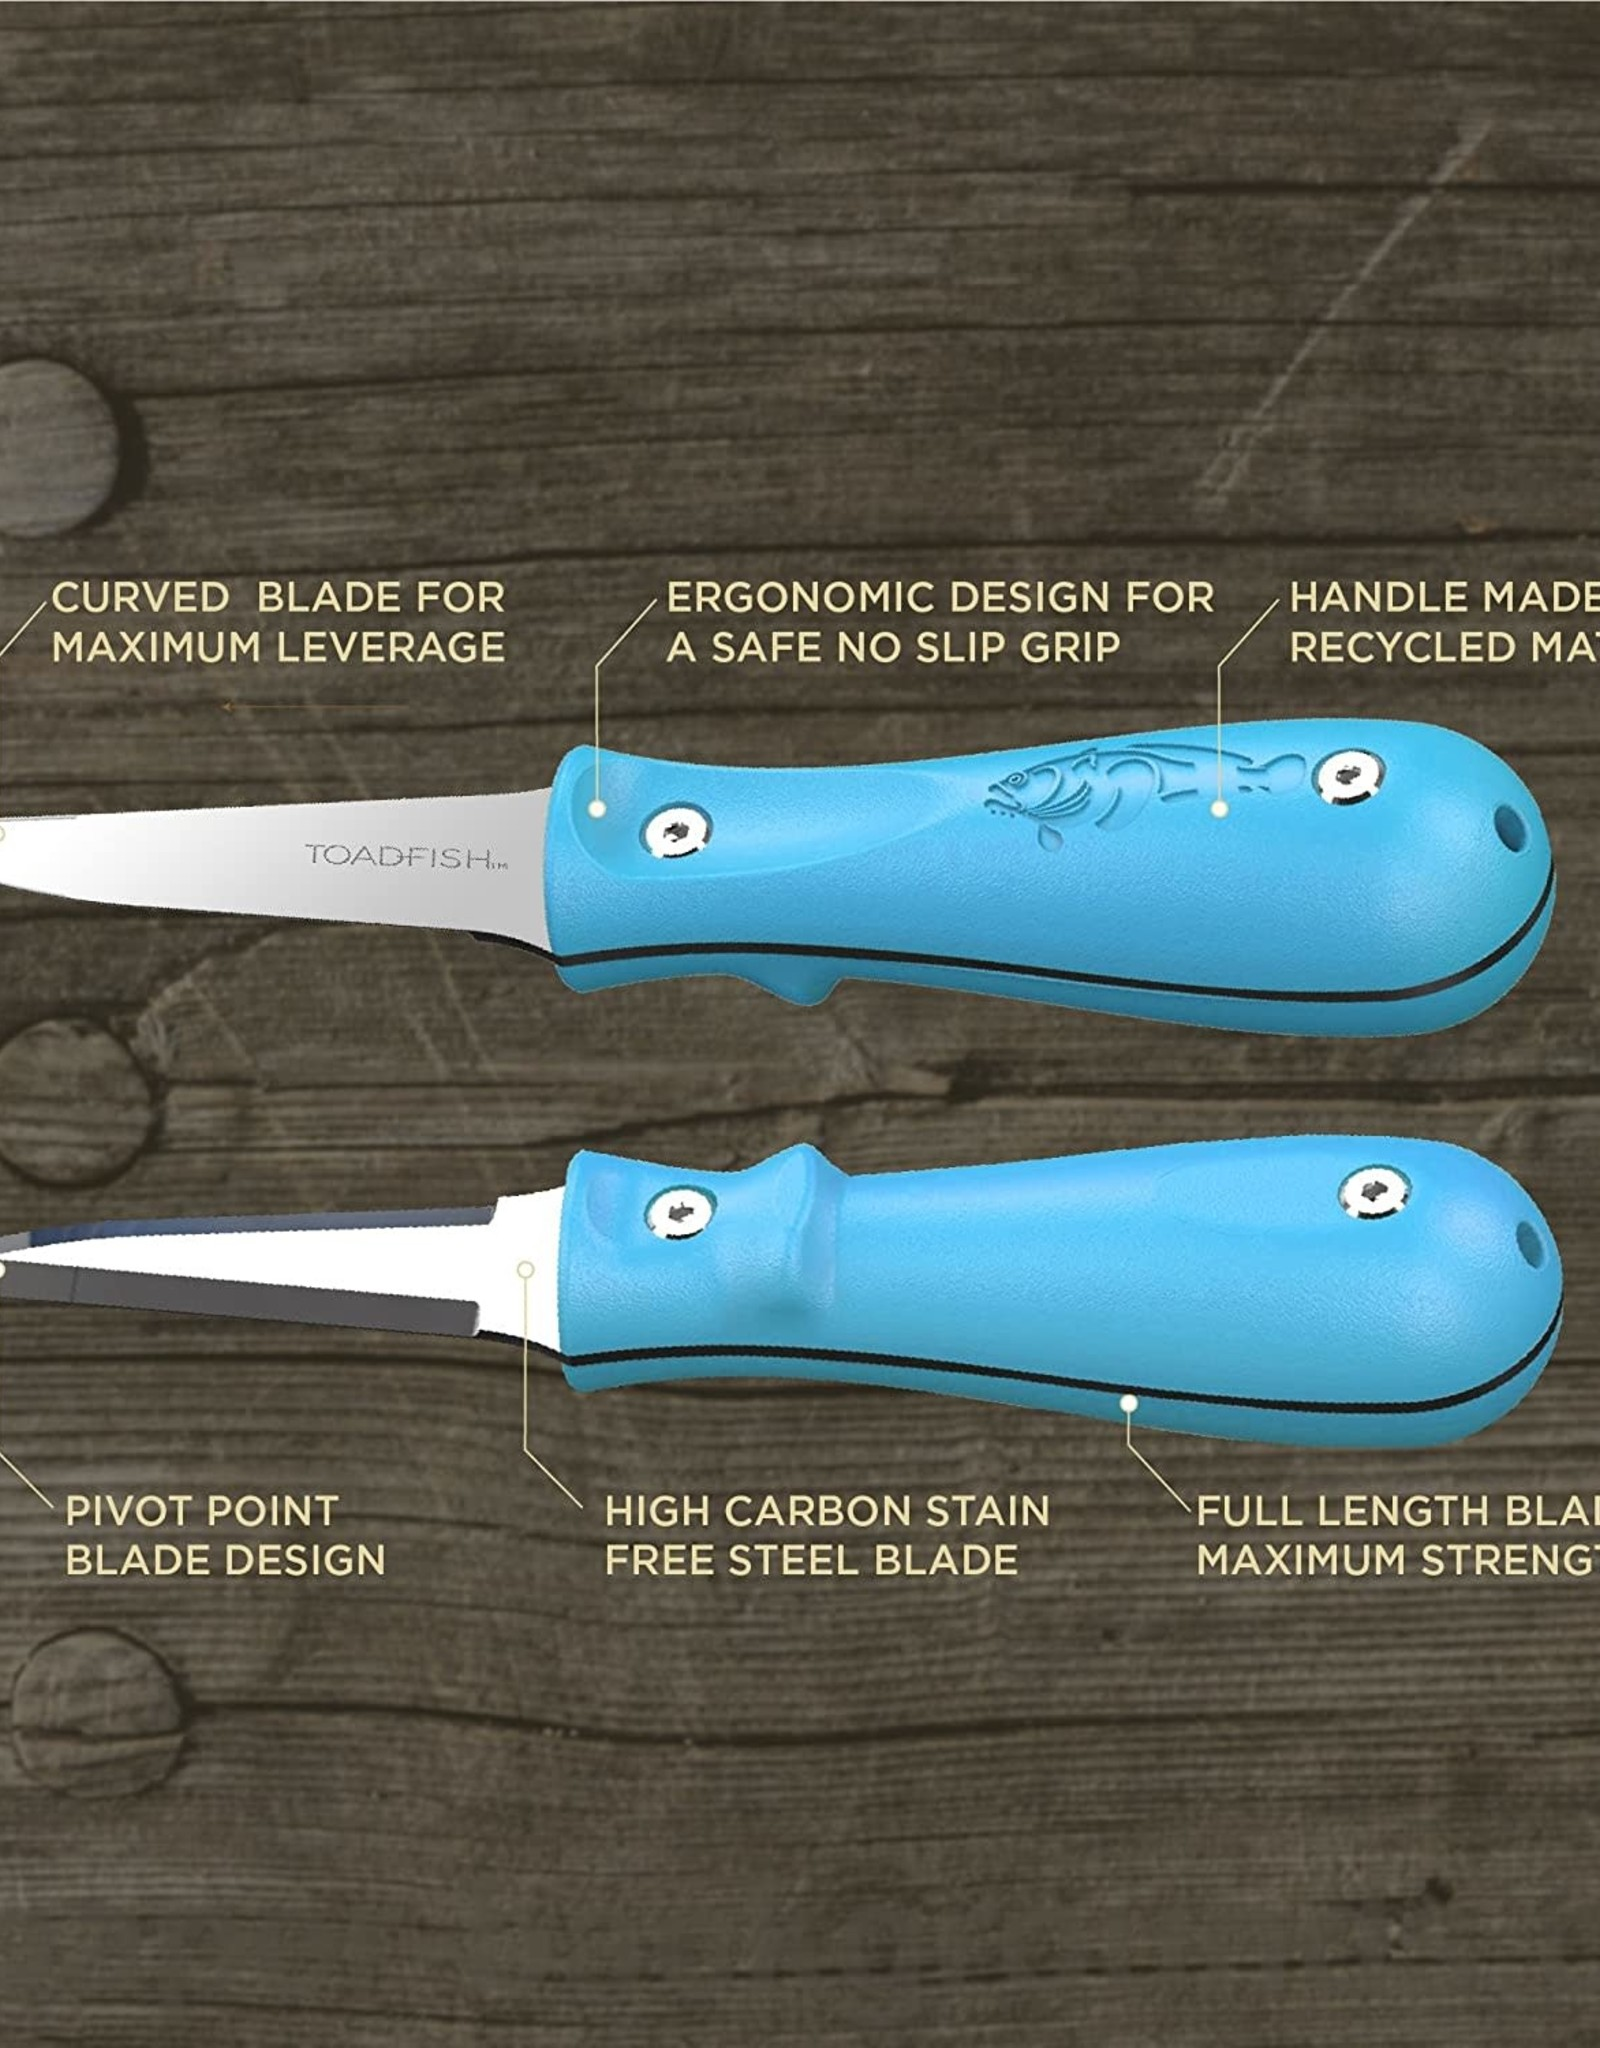 Toadfish Toadfish Outfitters Put 'Em Back Oyster Knife - Teal